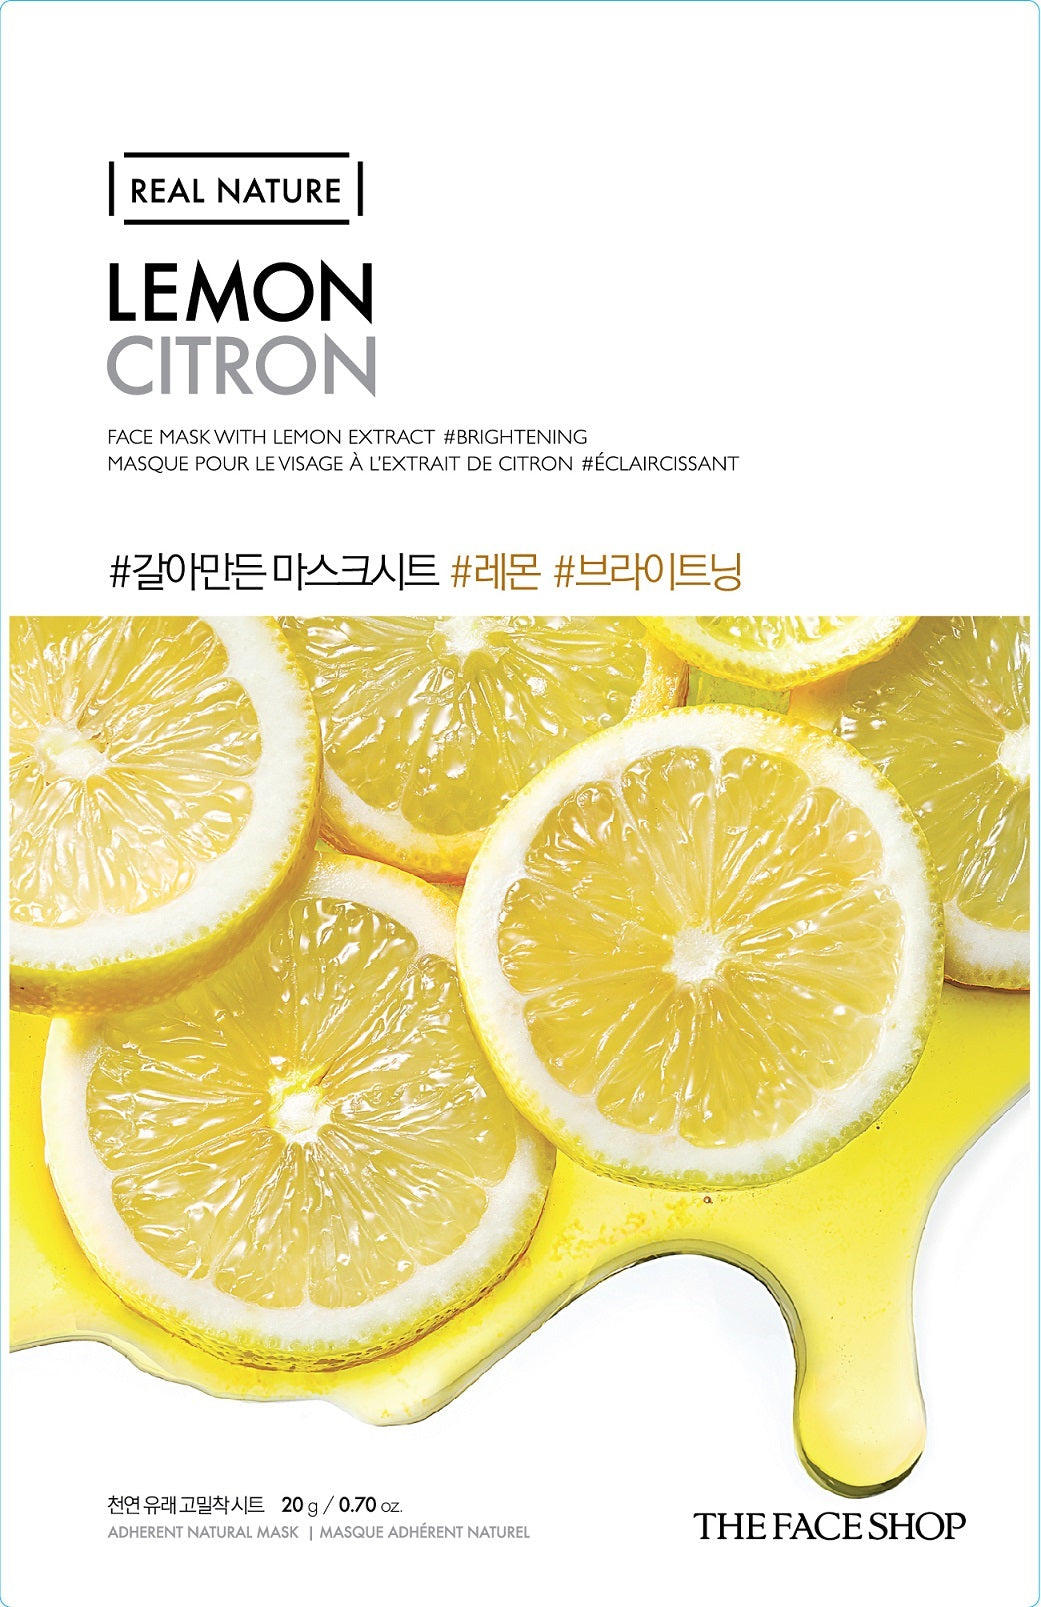 REAL NATURE LEMON FACE MASK - 20G